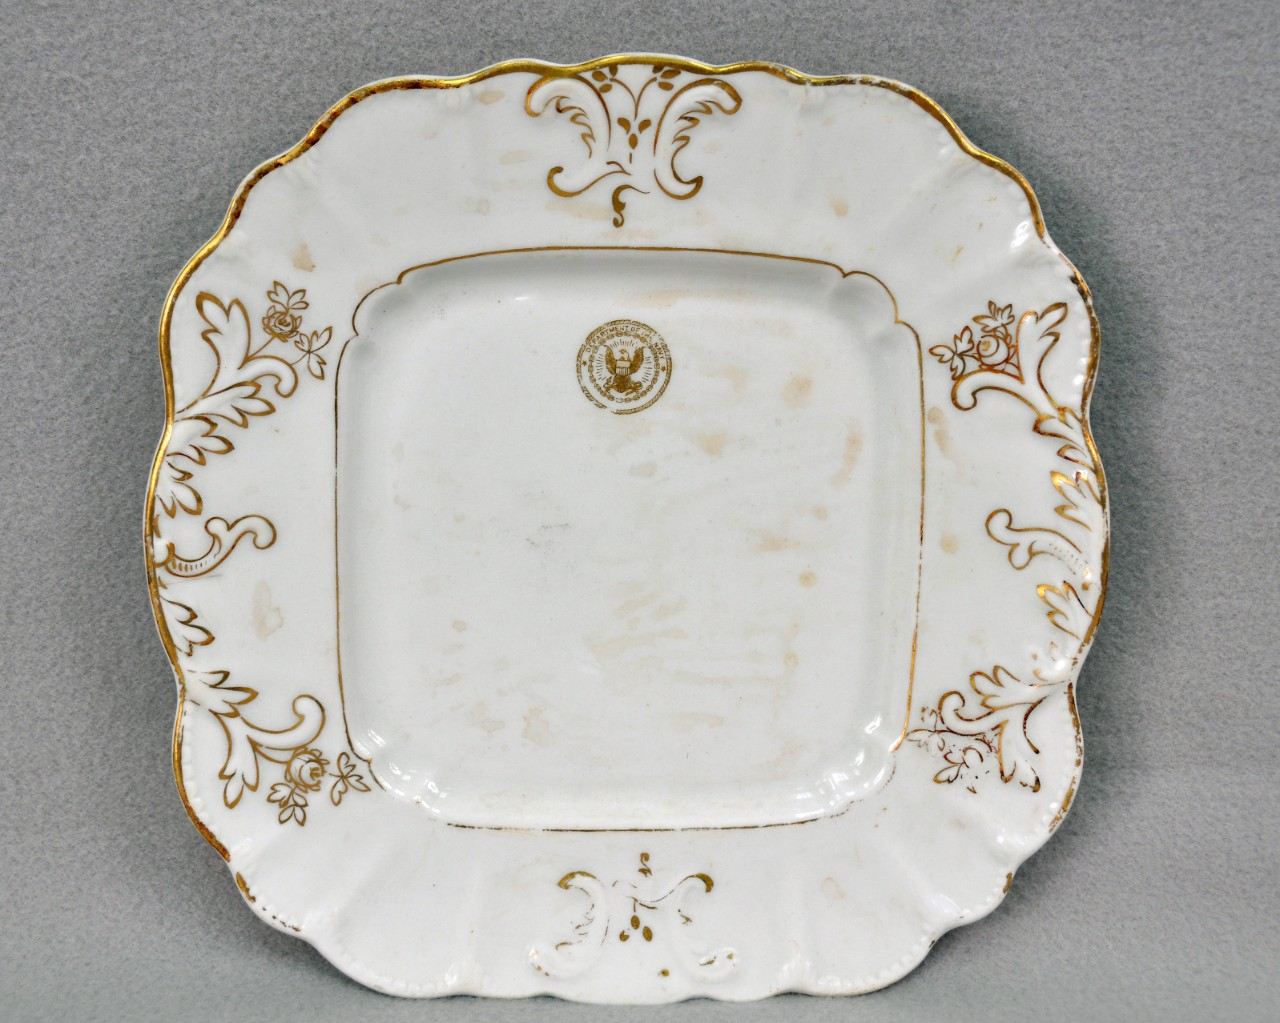 "<p>A white, ceramic, square-shaped plate. It is decorated with gilded floral molding on the lip and has a gold eagle seal that says ""Department of the Navy"" on the top.</p>"